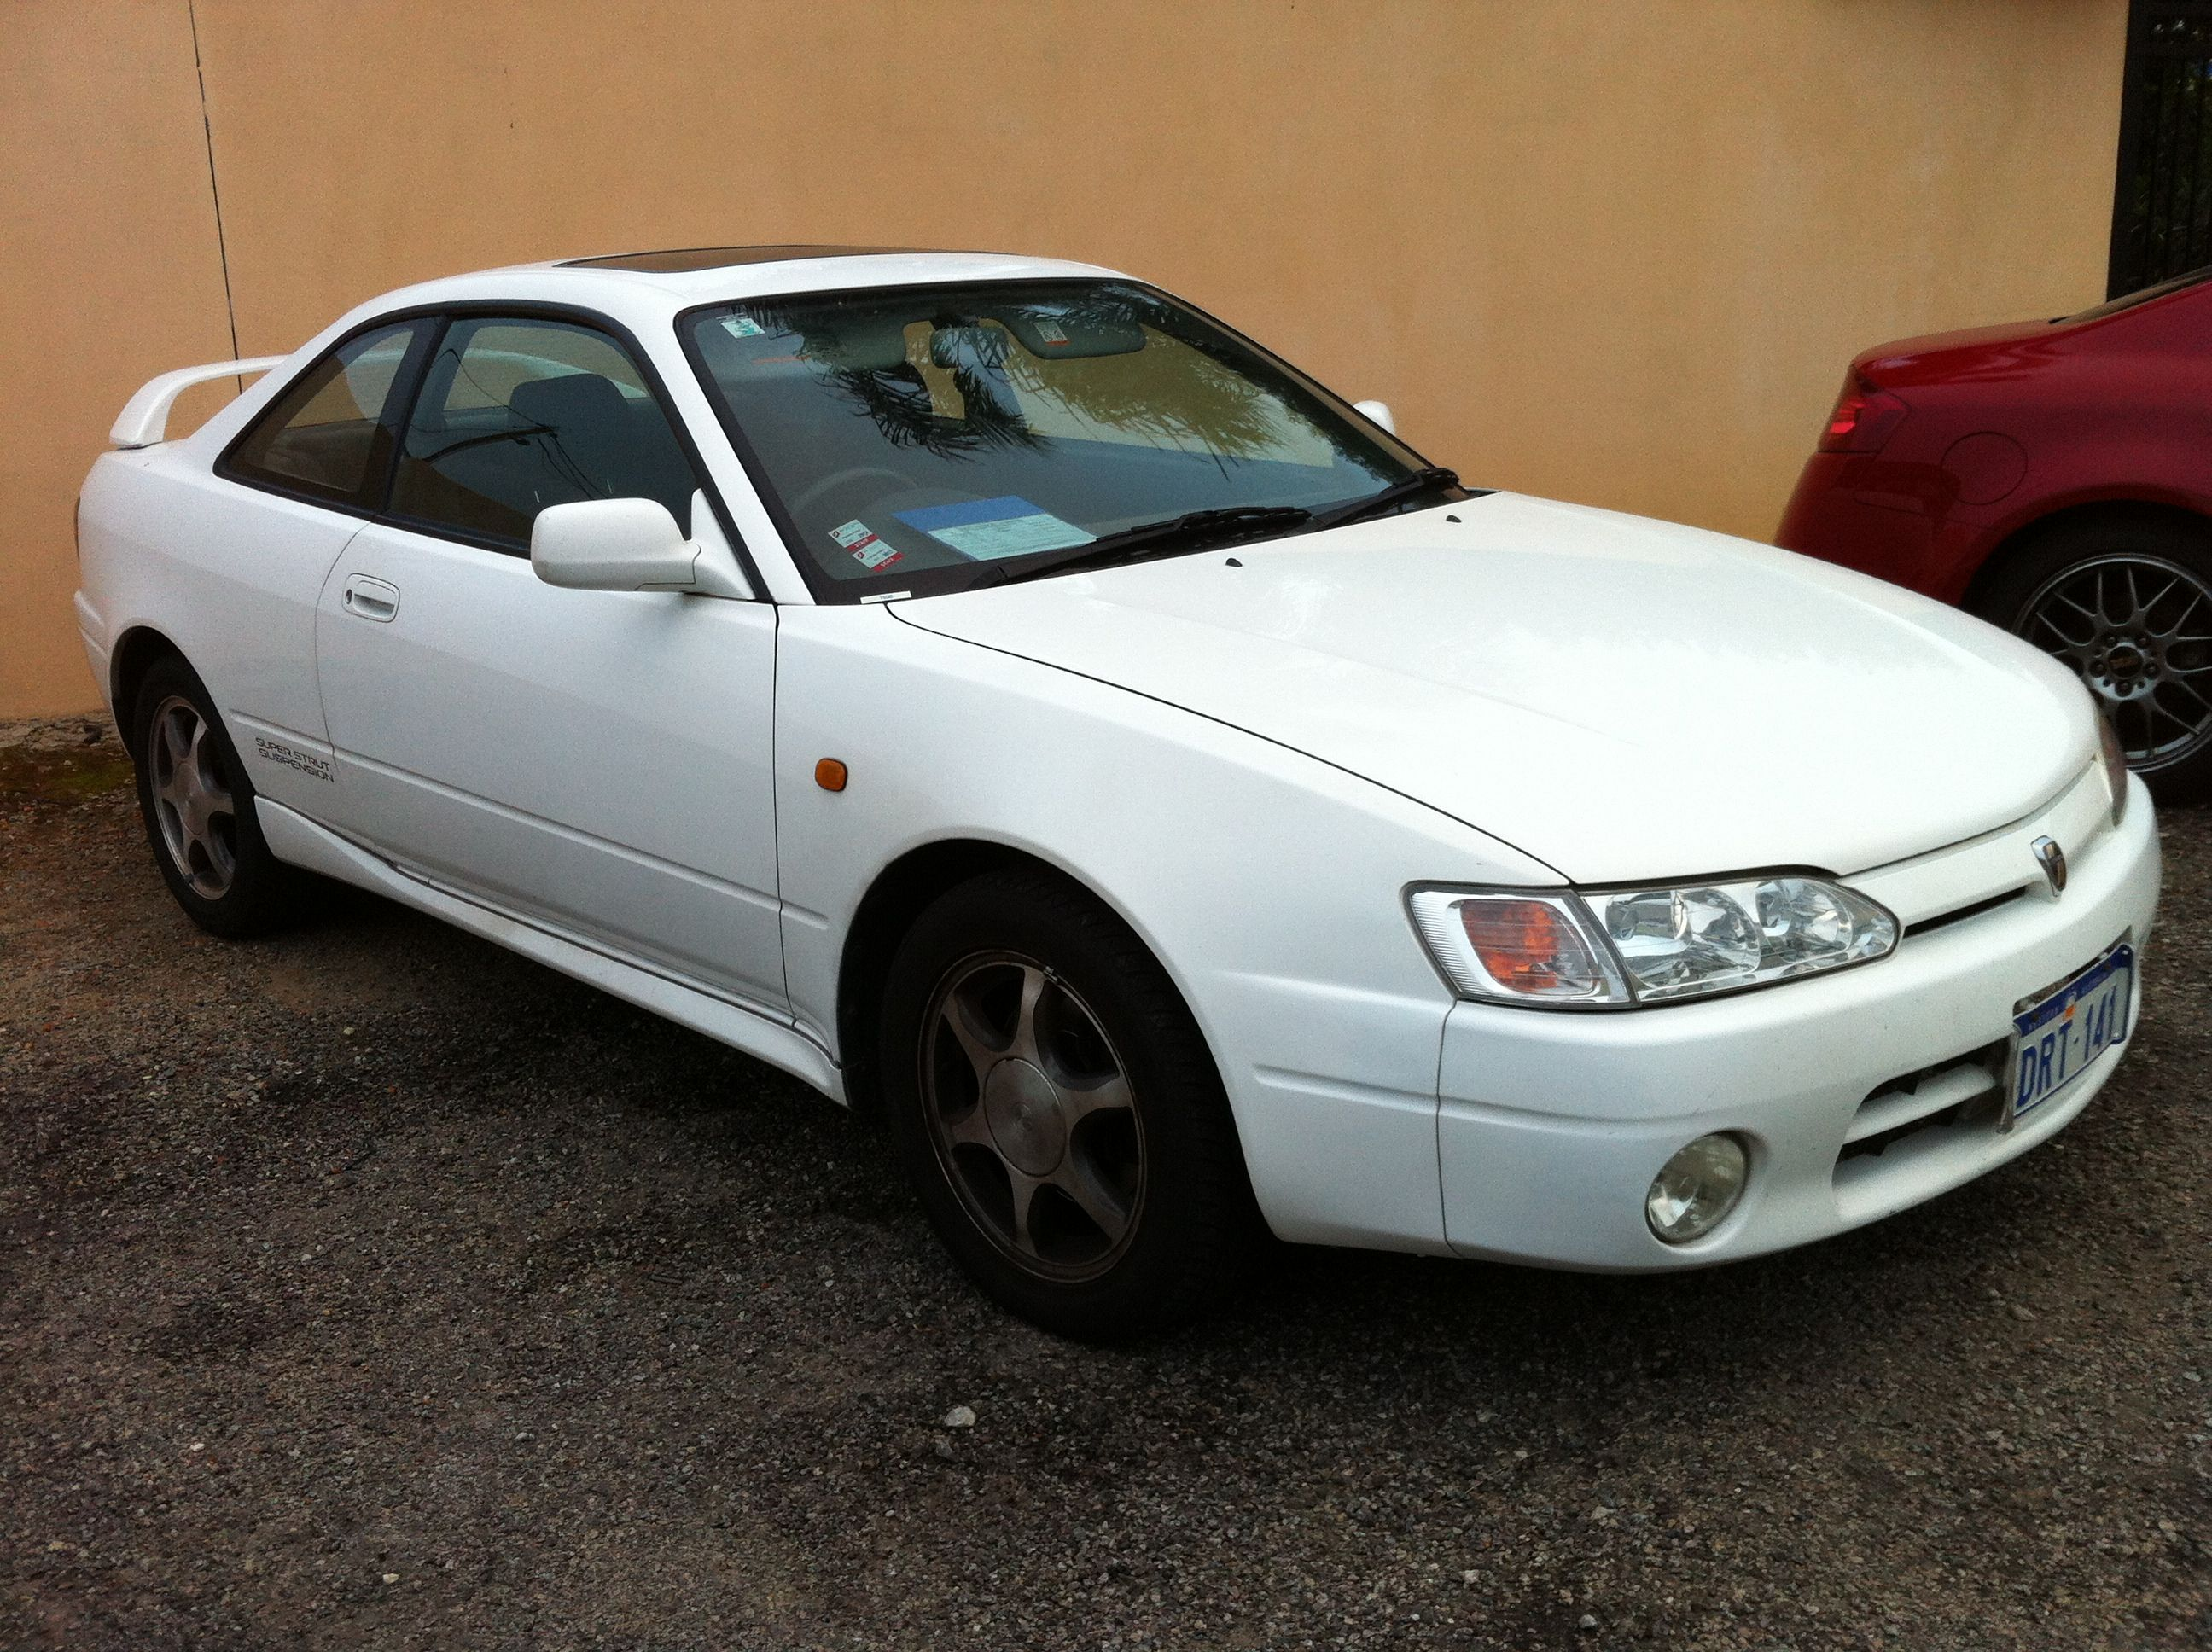 Car Wise is a well known name in used and second hand car